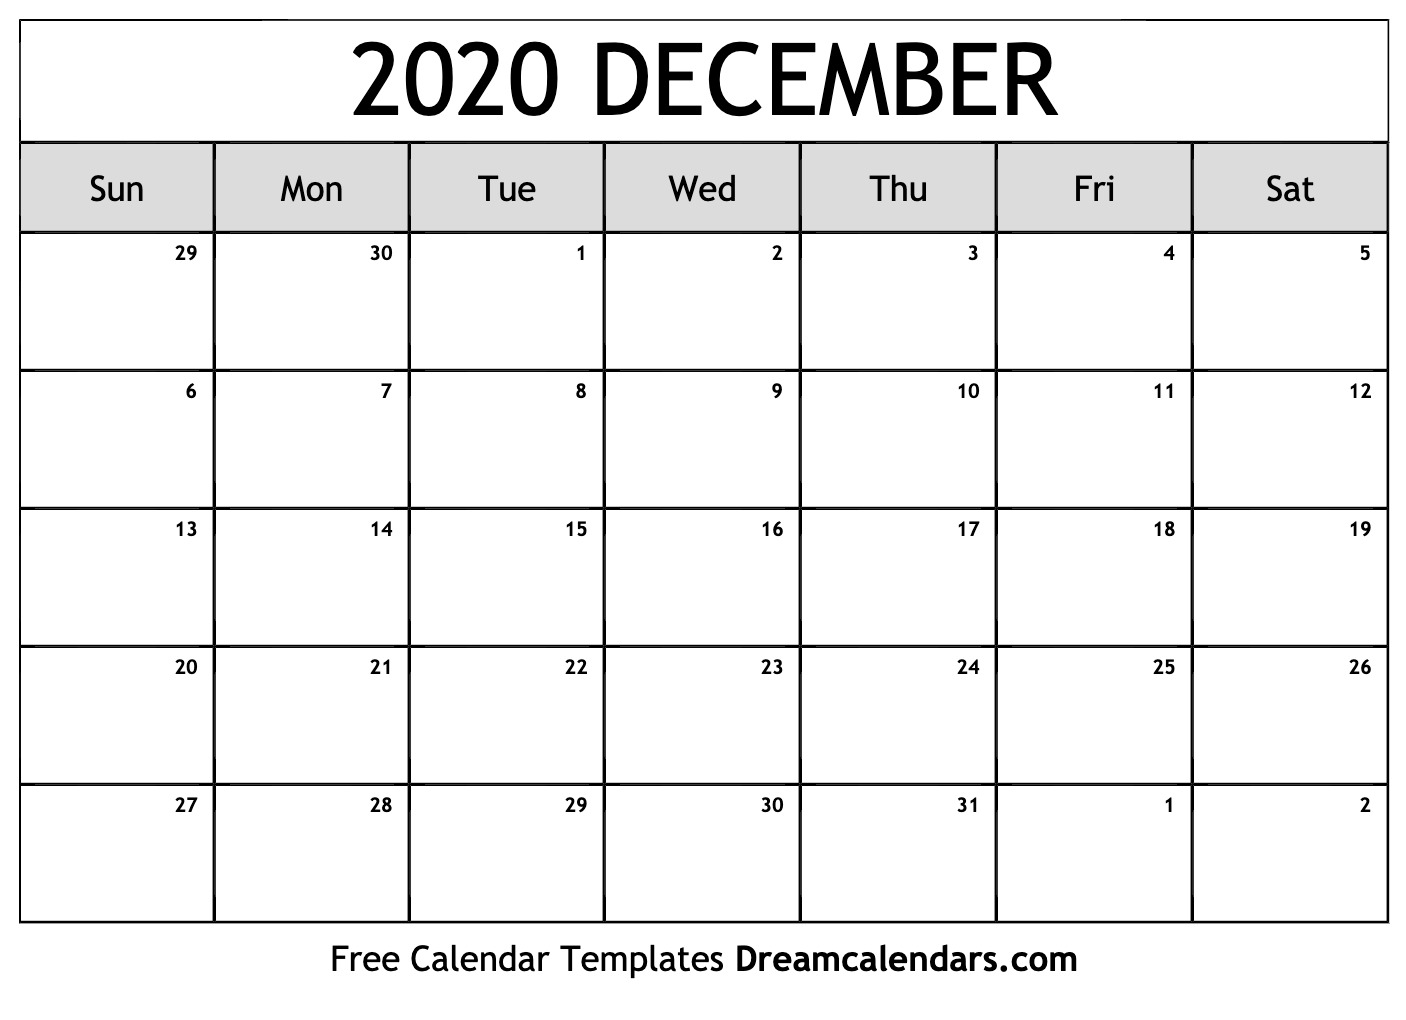 Christmas Theme Calendar December 2020 Printable December 2020 Calendar